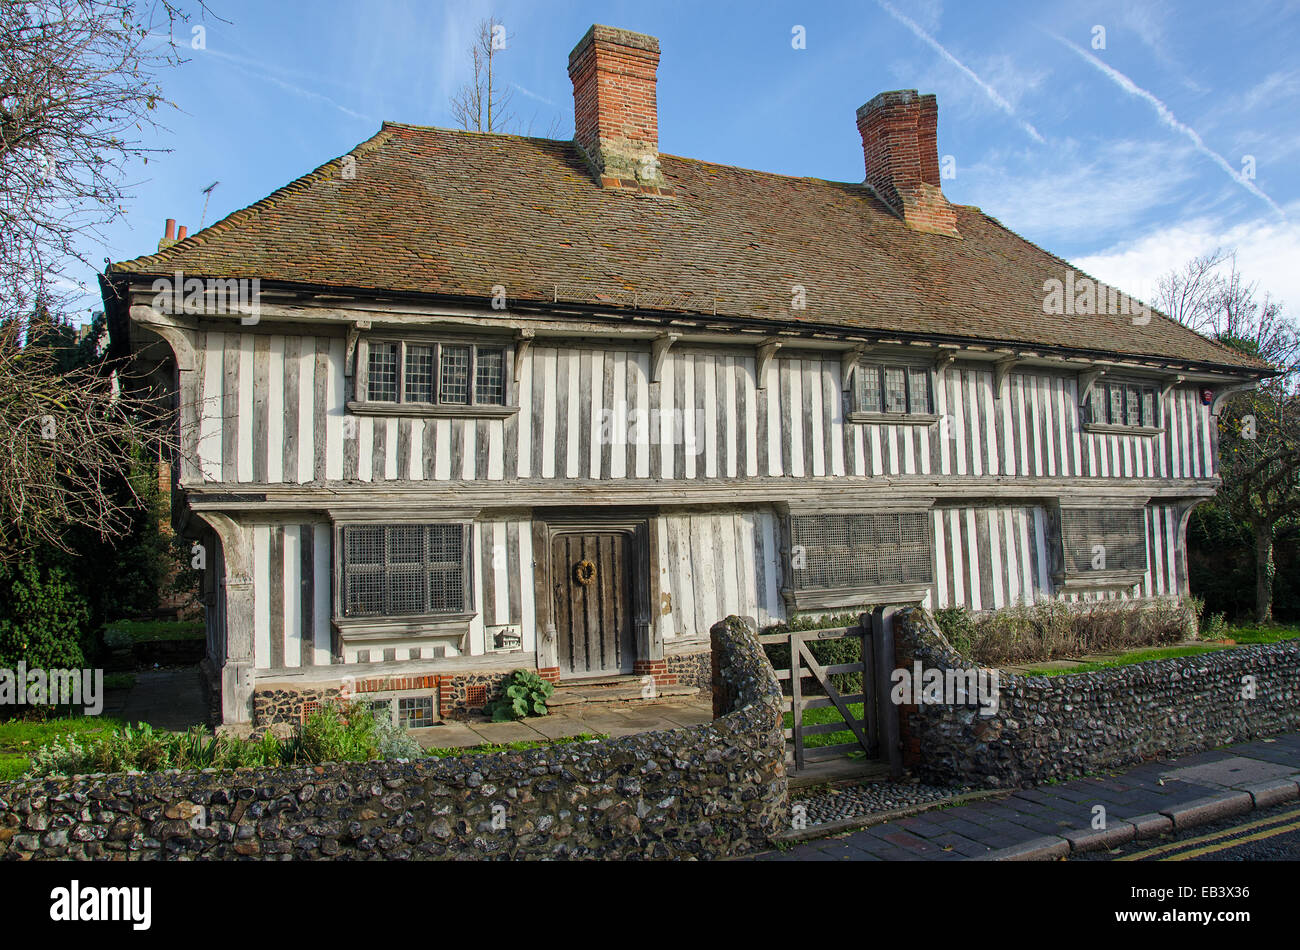 The tudor house one of the oldest houses in margate kent for Tudor house